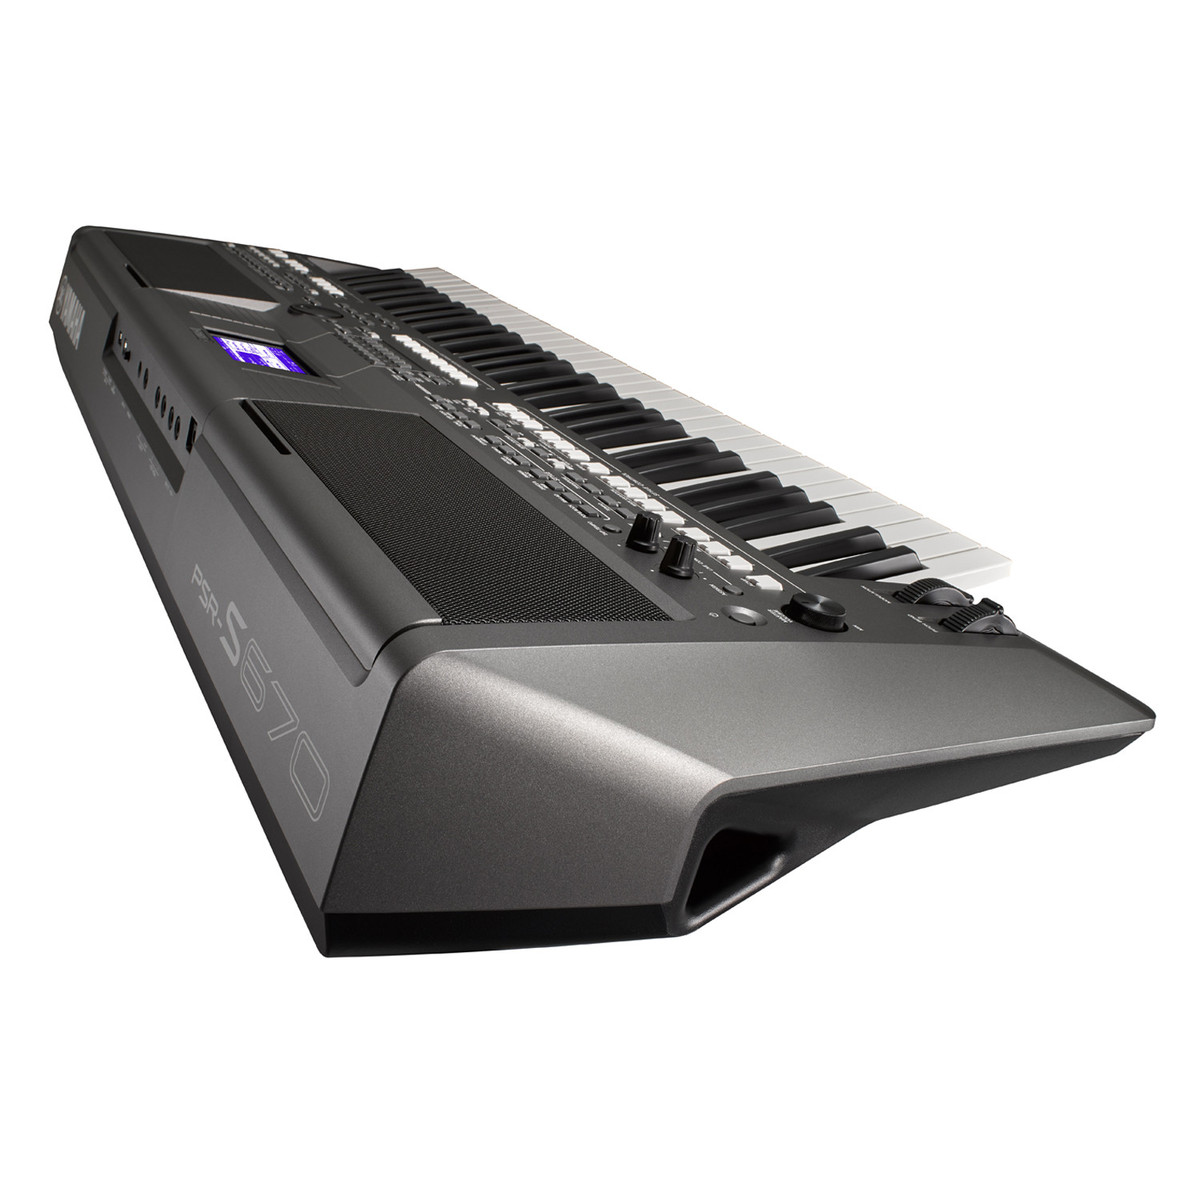 yamaha psr s670 arranger workstation keyboard trax music. Black Bedroom Furniture Sets. Home Design Ideas